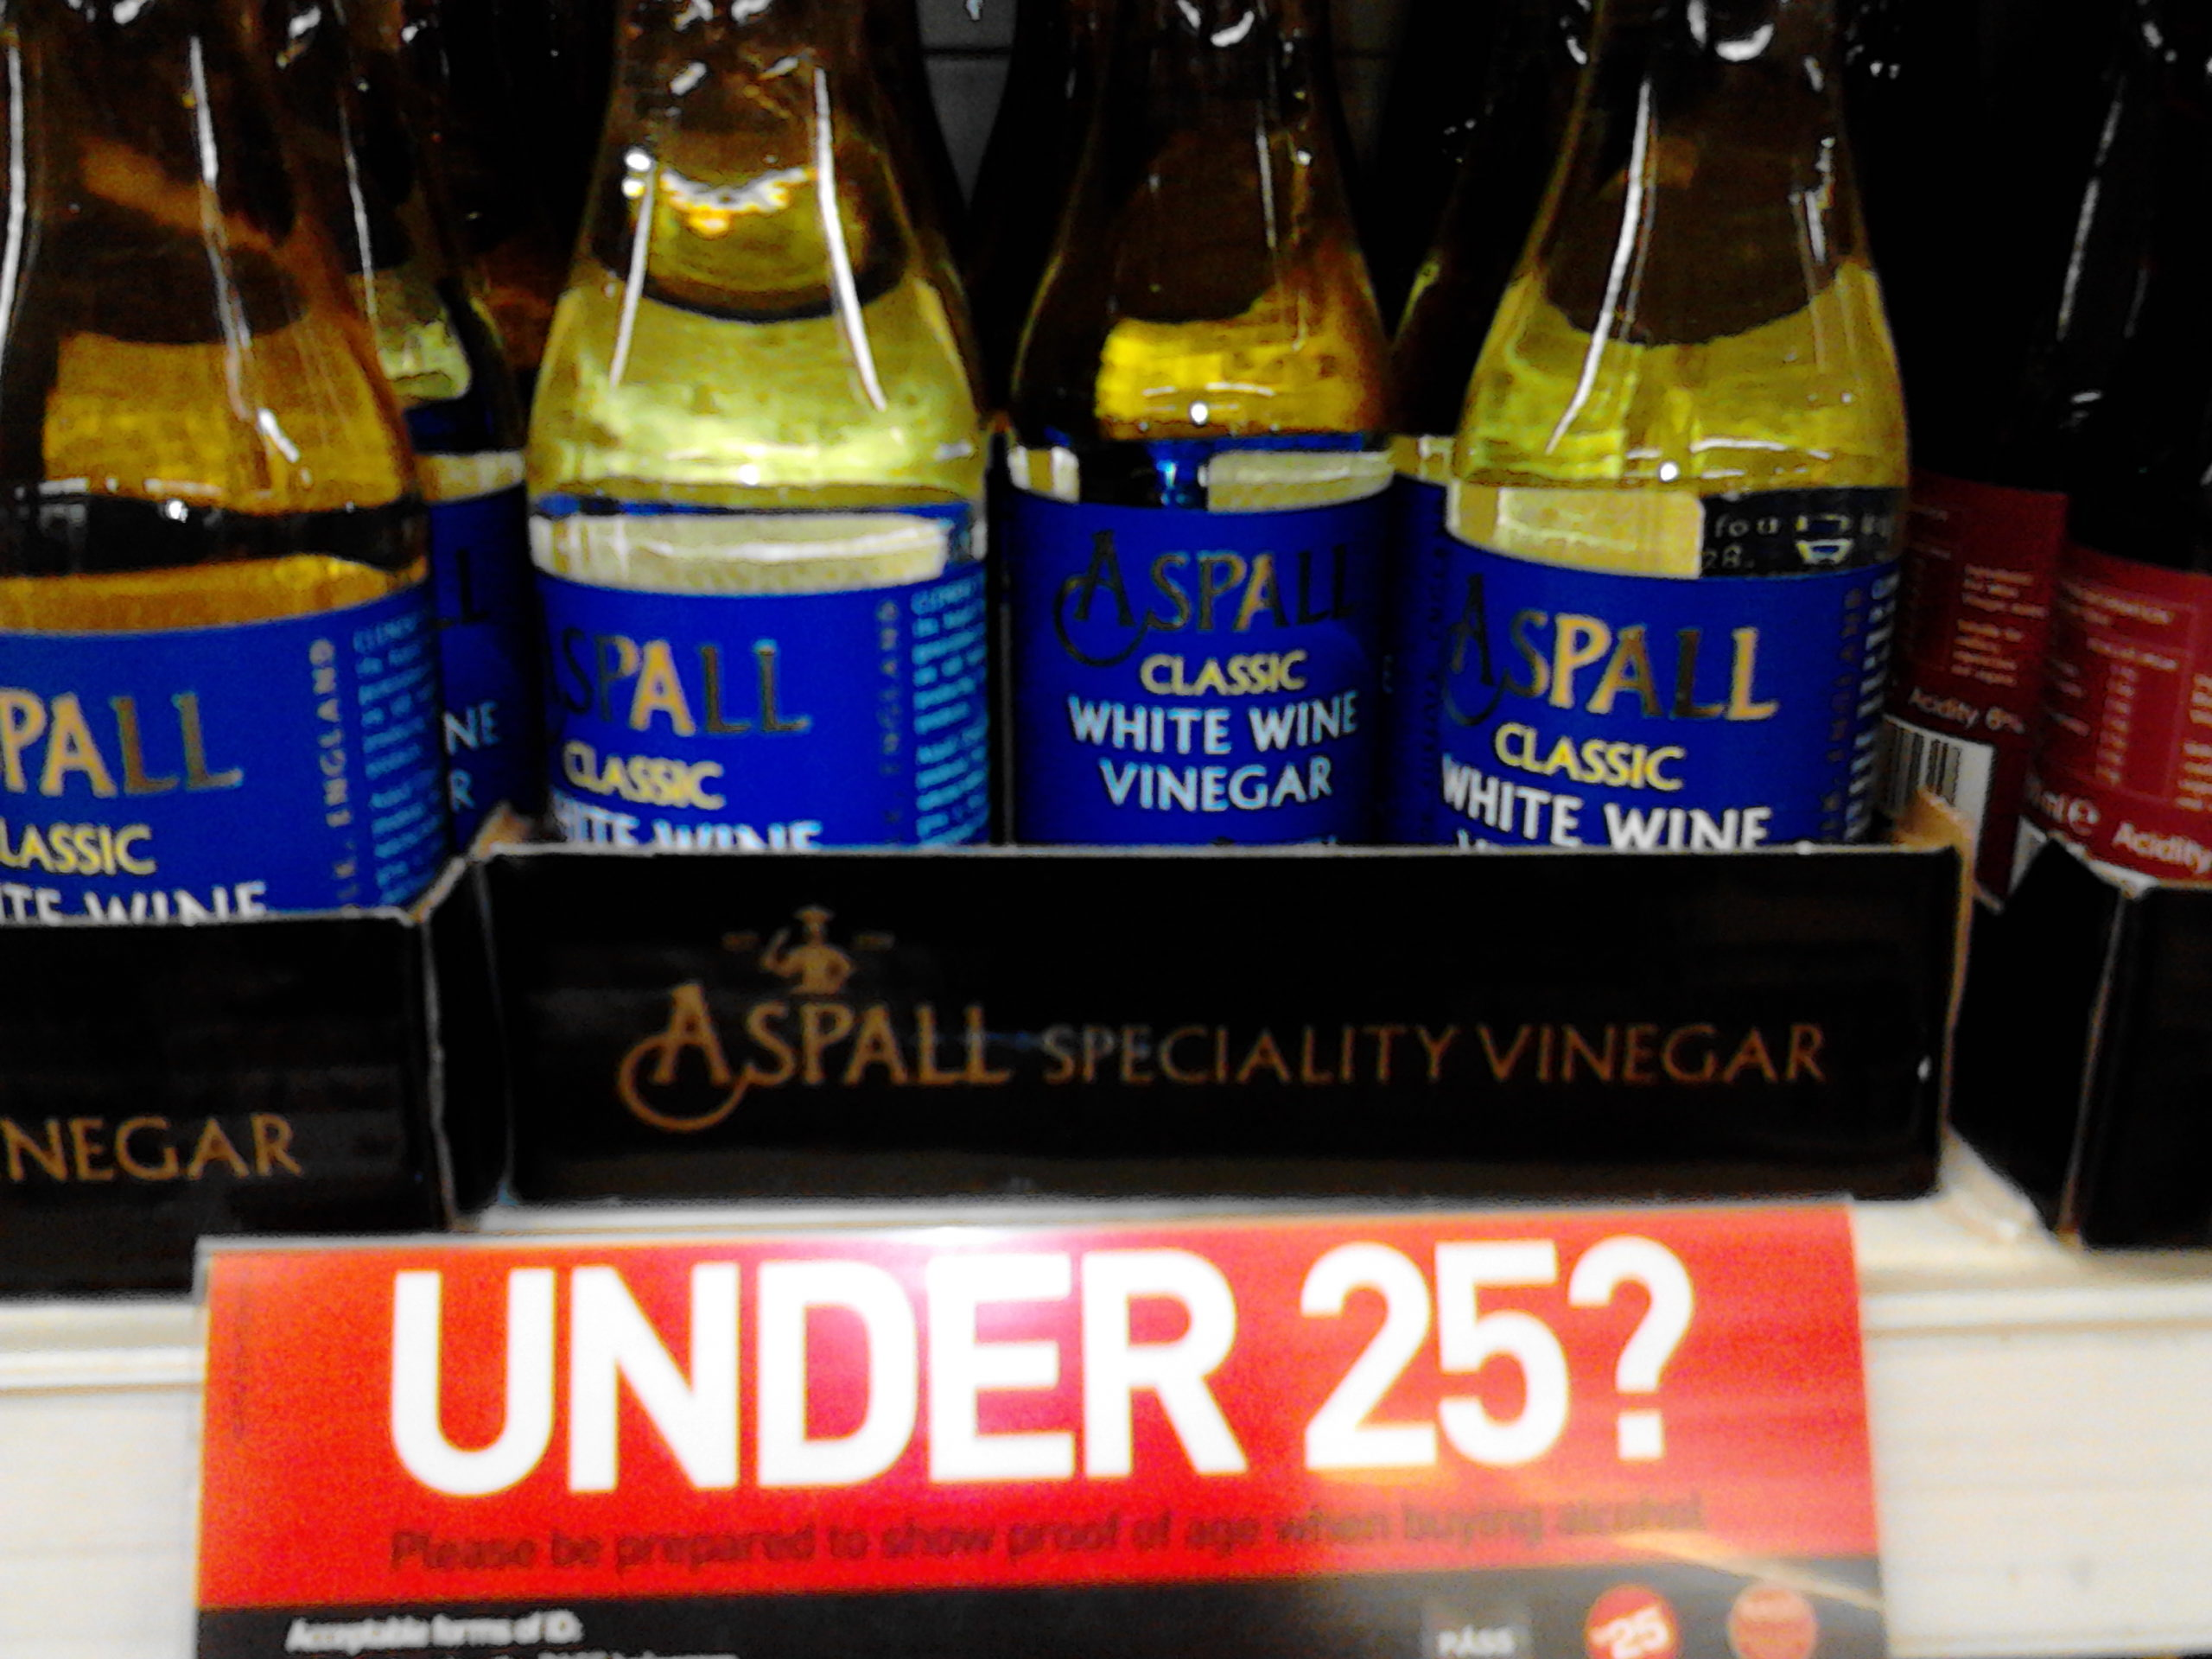 Under 25? Please be prepared to show proof of age when buying alcohol